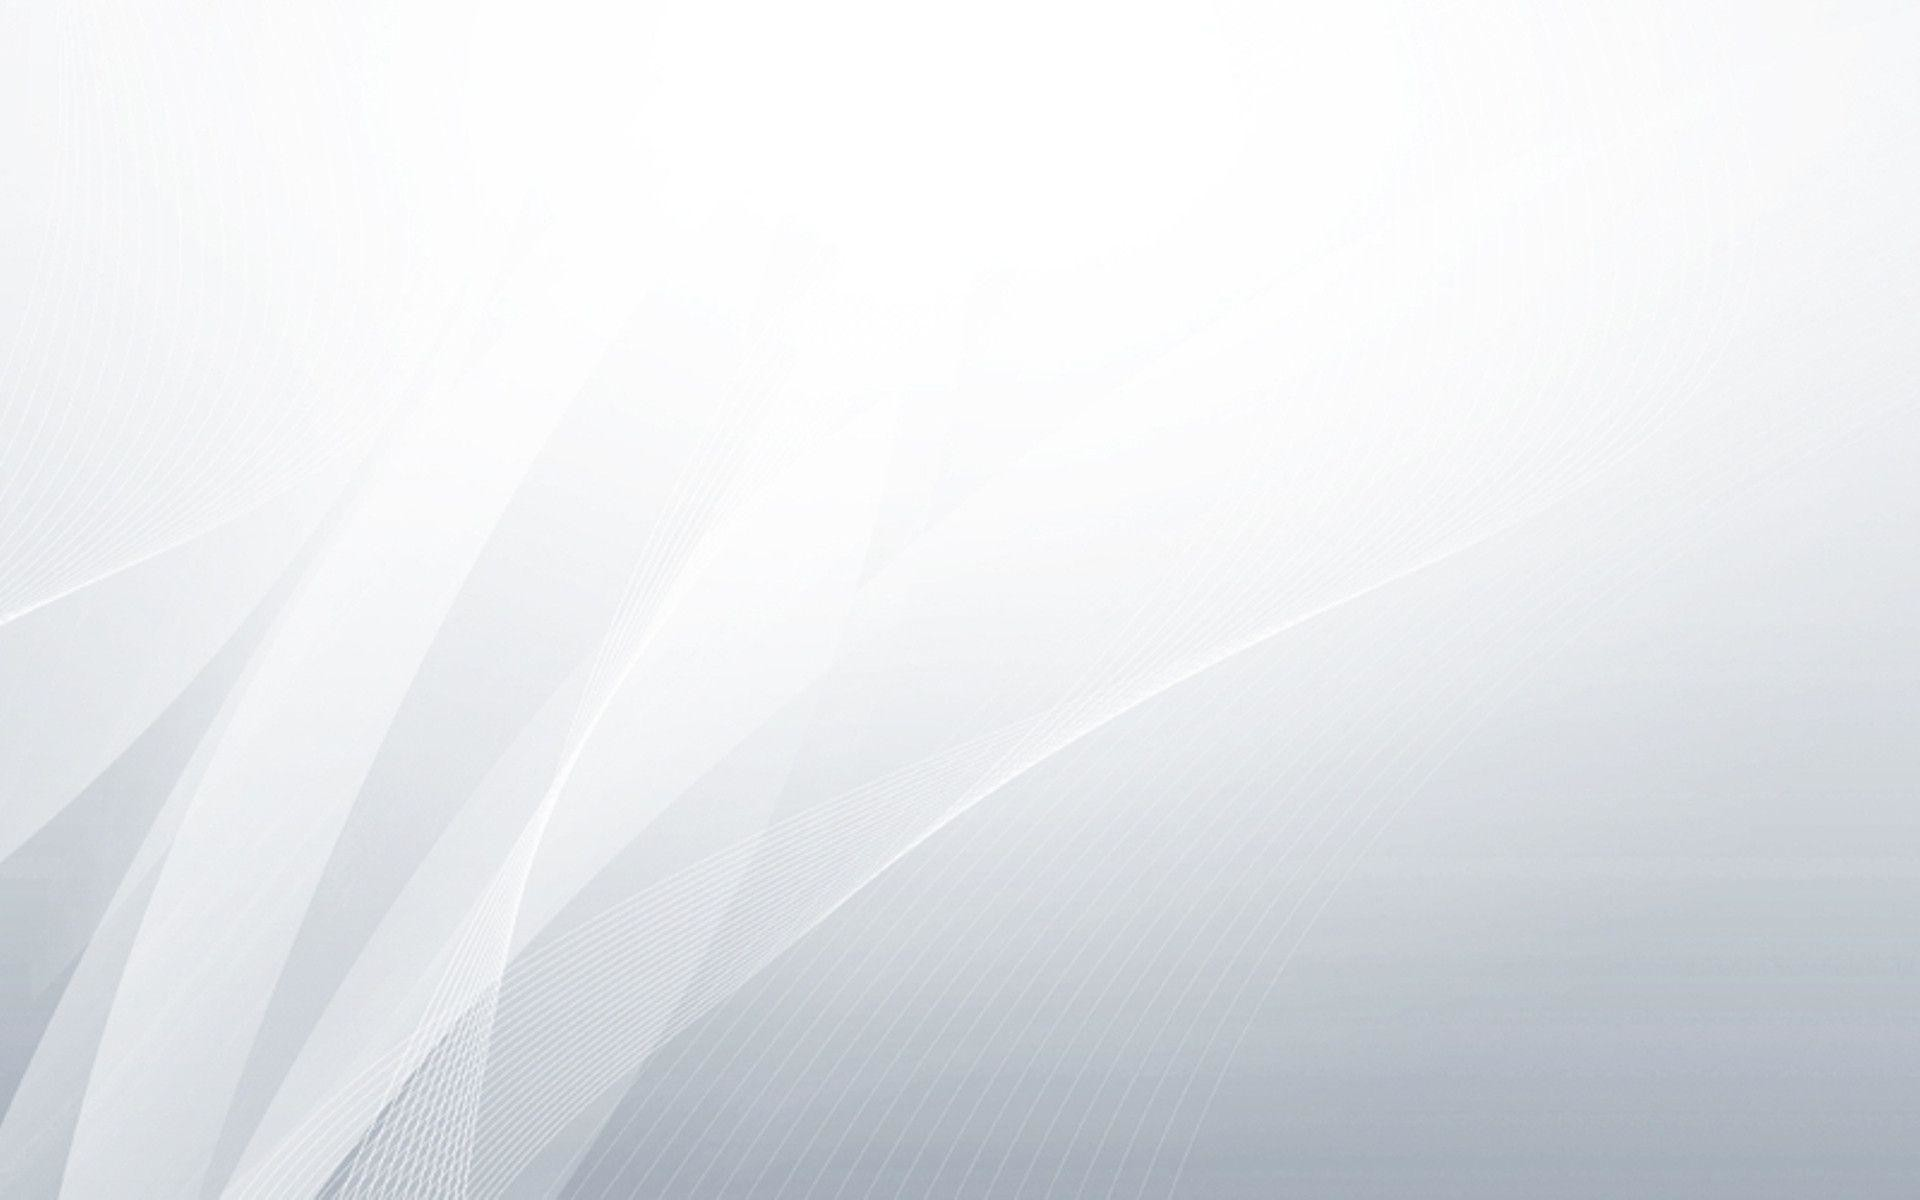 White Abstract Backgrounds | Download High Quality Resolution .